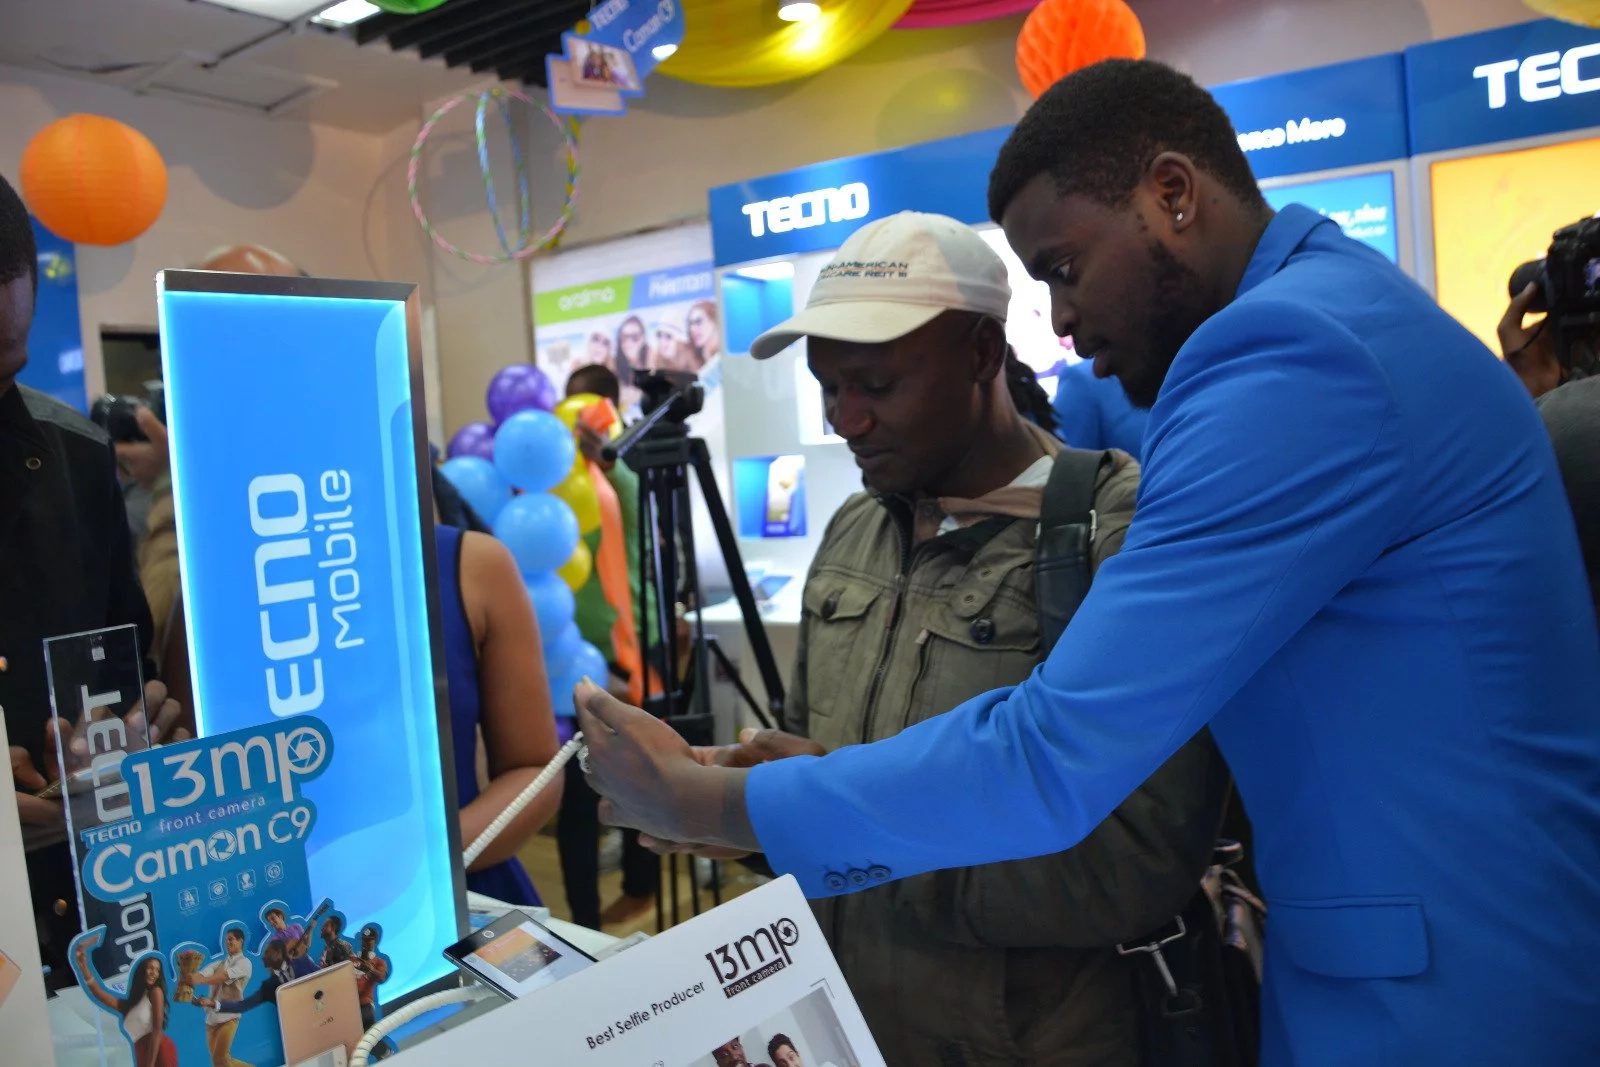 Photos from the launch of the Tecno Camon c9 launch in Kenya